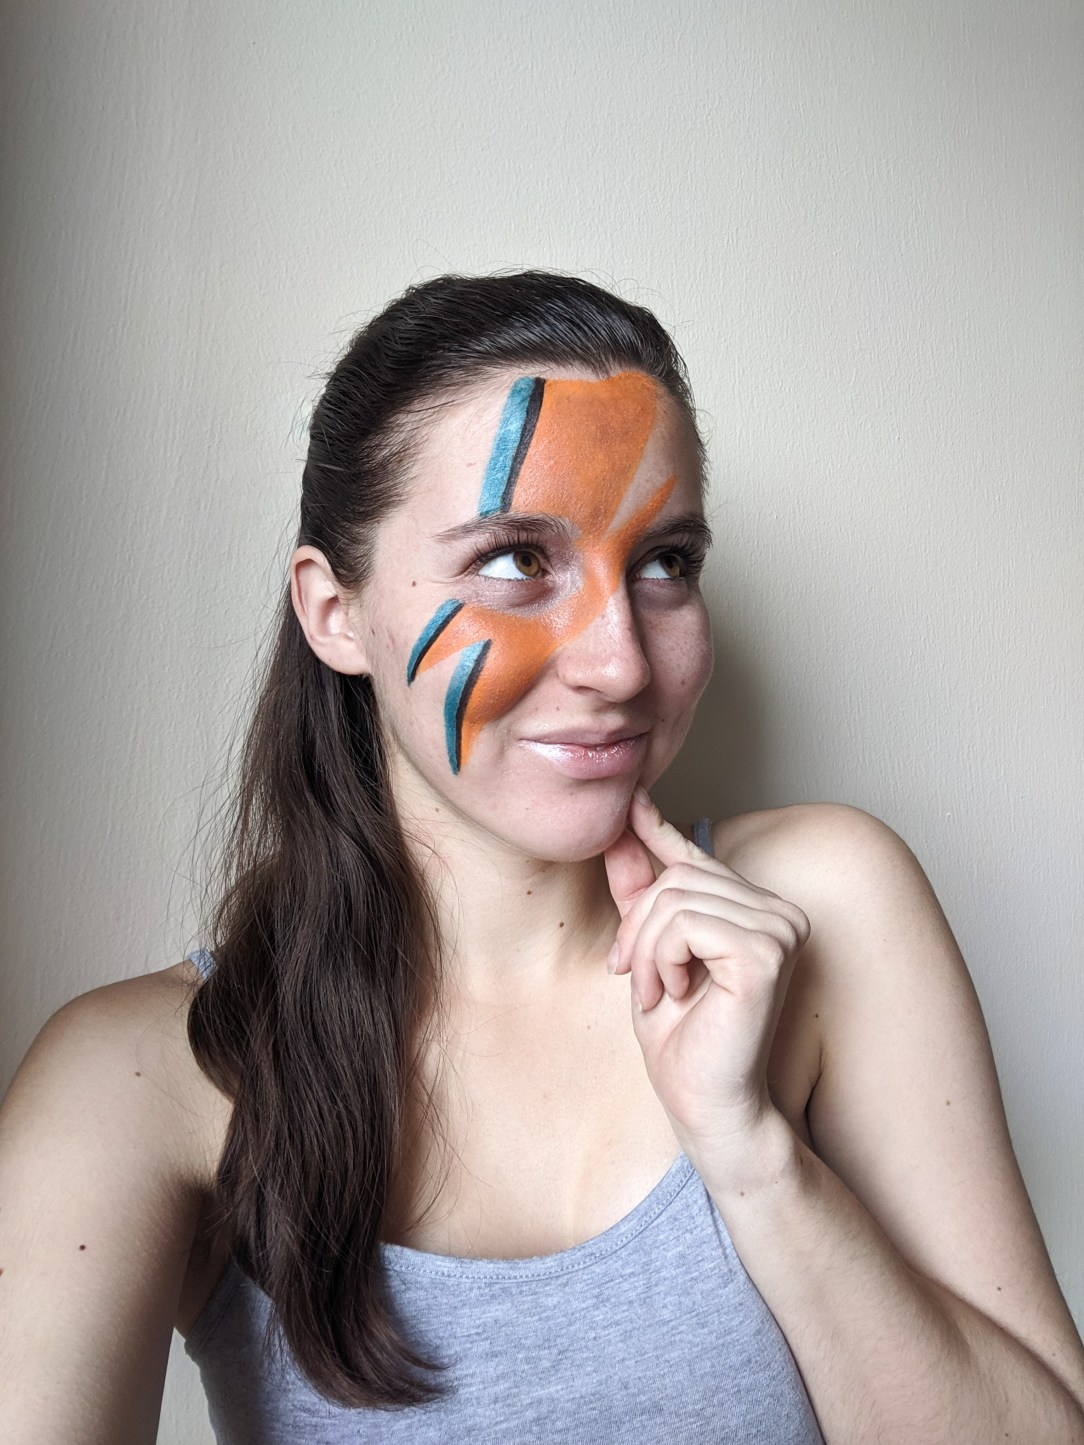 David Bowie, album cover, Aladdin Sane, face paint